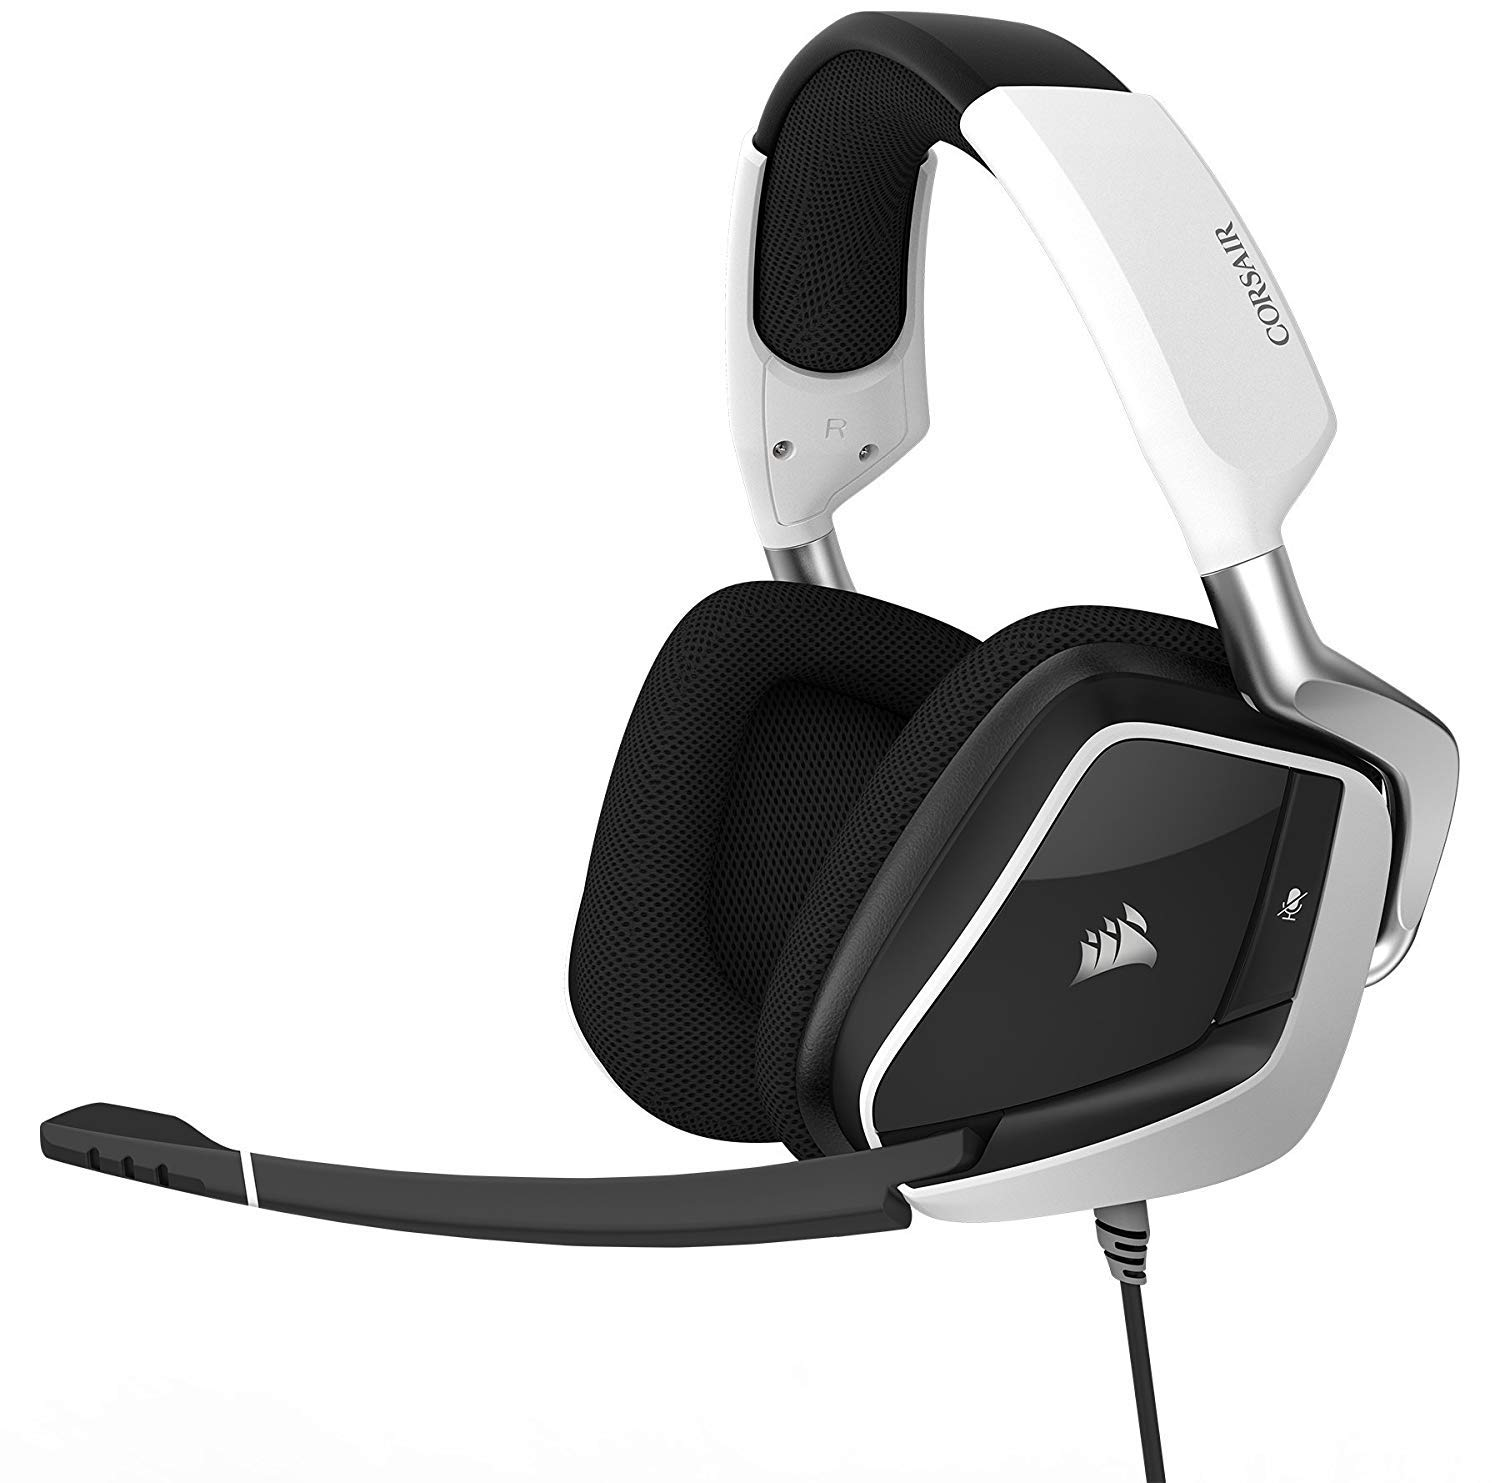 CORSAIR Void PRO RGB USB Gaming Headset - Dolby 7.1 Surround Sound Headphones for PC - Discord Certified - 50mm Drivers - White by Corsair